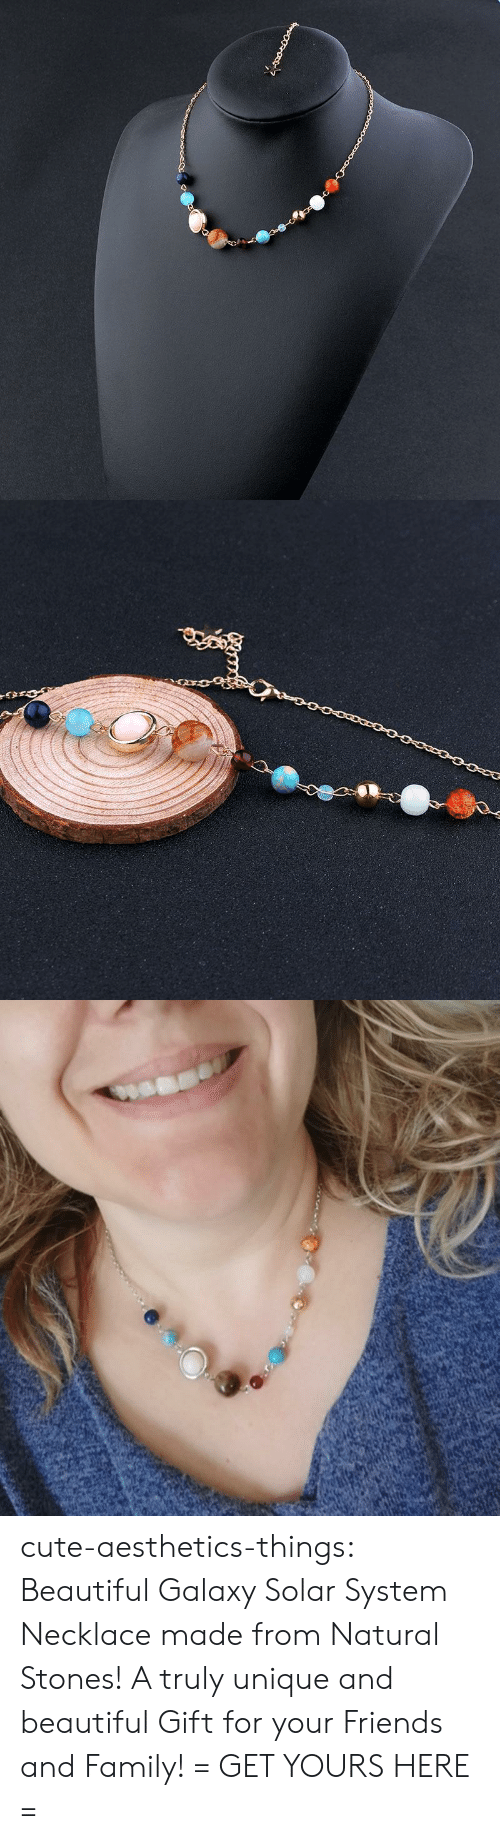 Beautiful, Cute, and Family: cute-aesthetics-things: Beautiful Galaxy Solar System Necklace made from Natural Stones! A truly unique and beautiful Gift for your Friends and Family! = GET YOURS HERE =